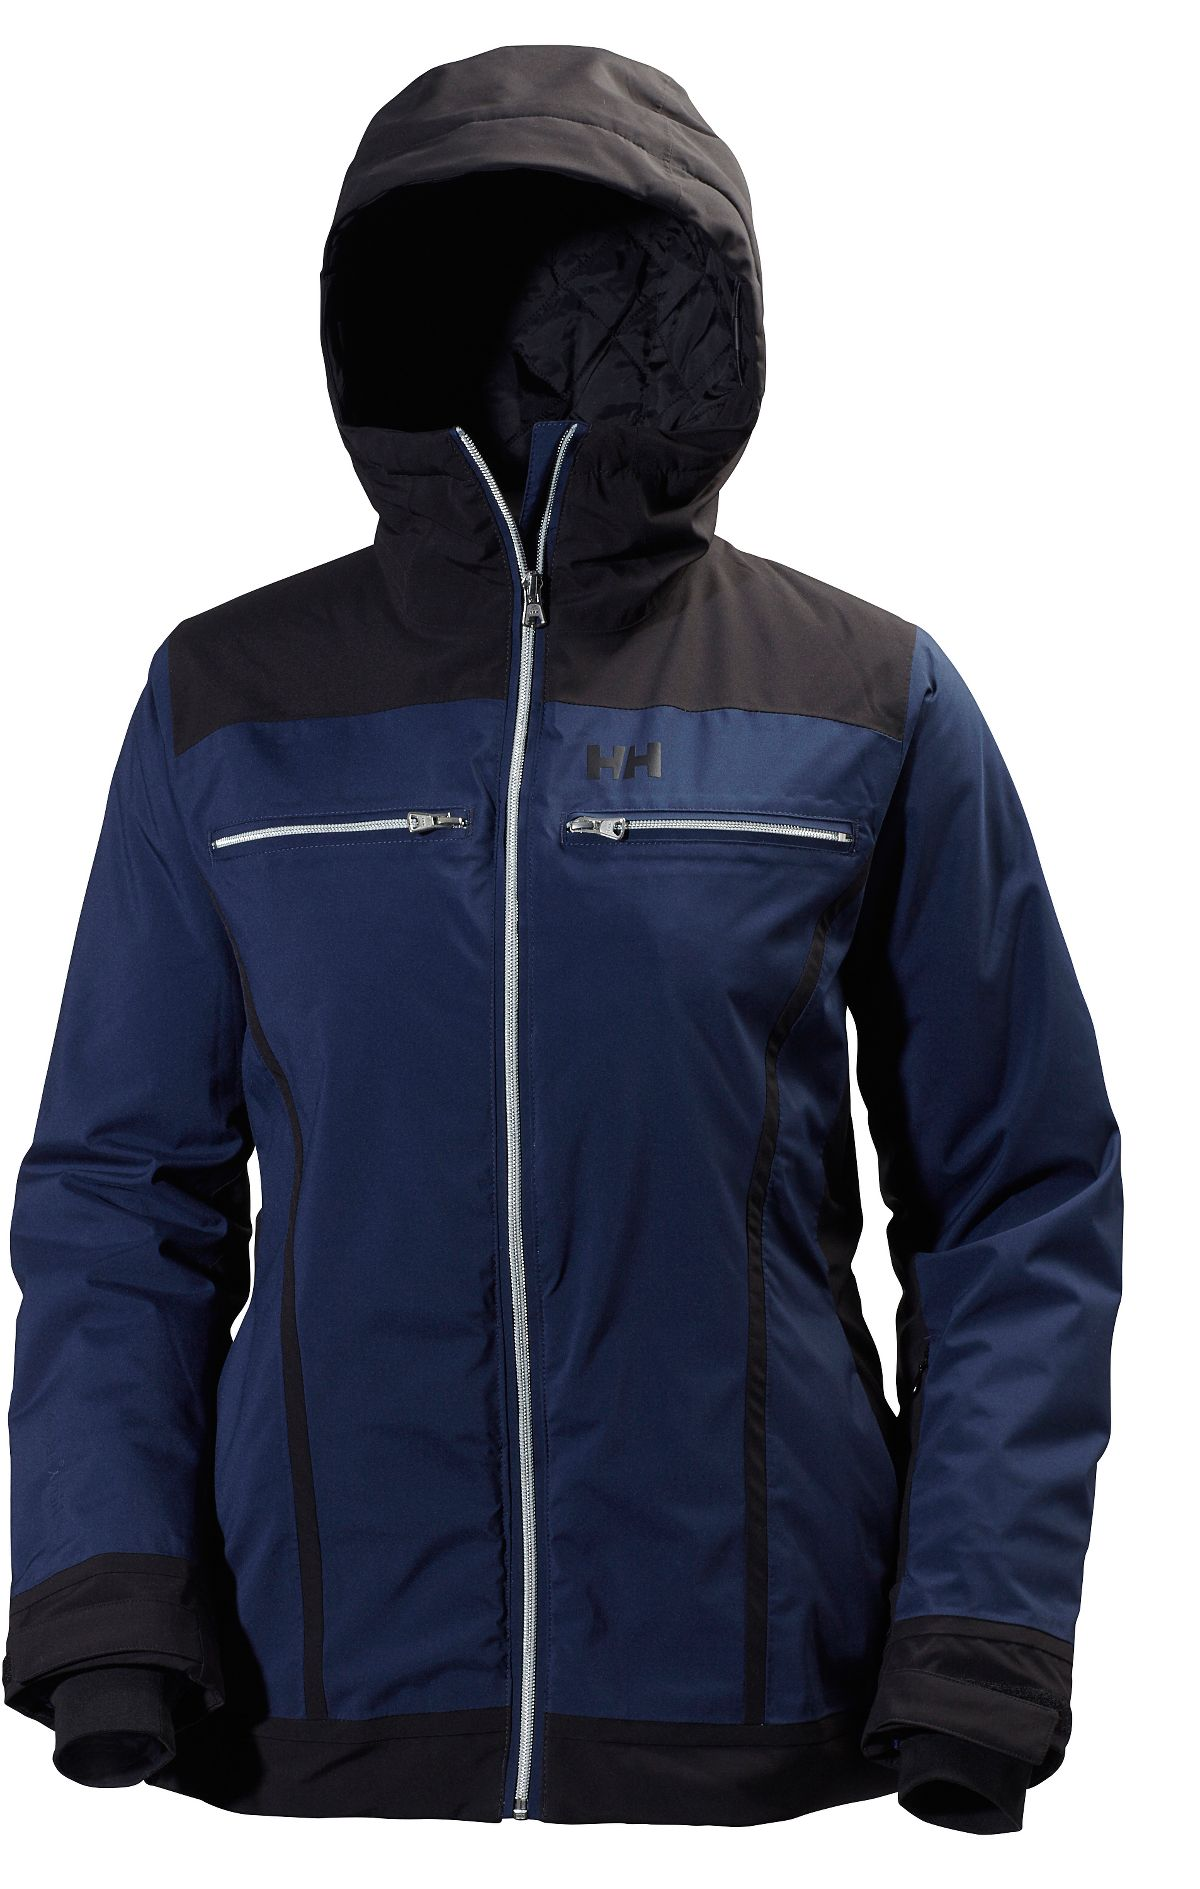 Because we design the warmest winter coats and jackets that are tested in the lab and field to perform no matter what, with new technologies for staying warm, dry and on the right track. MEN'S JACKETS AND COATS WOMEN'S JACKETS AND COATS KIDS' JACKETS AND COATS.